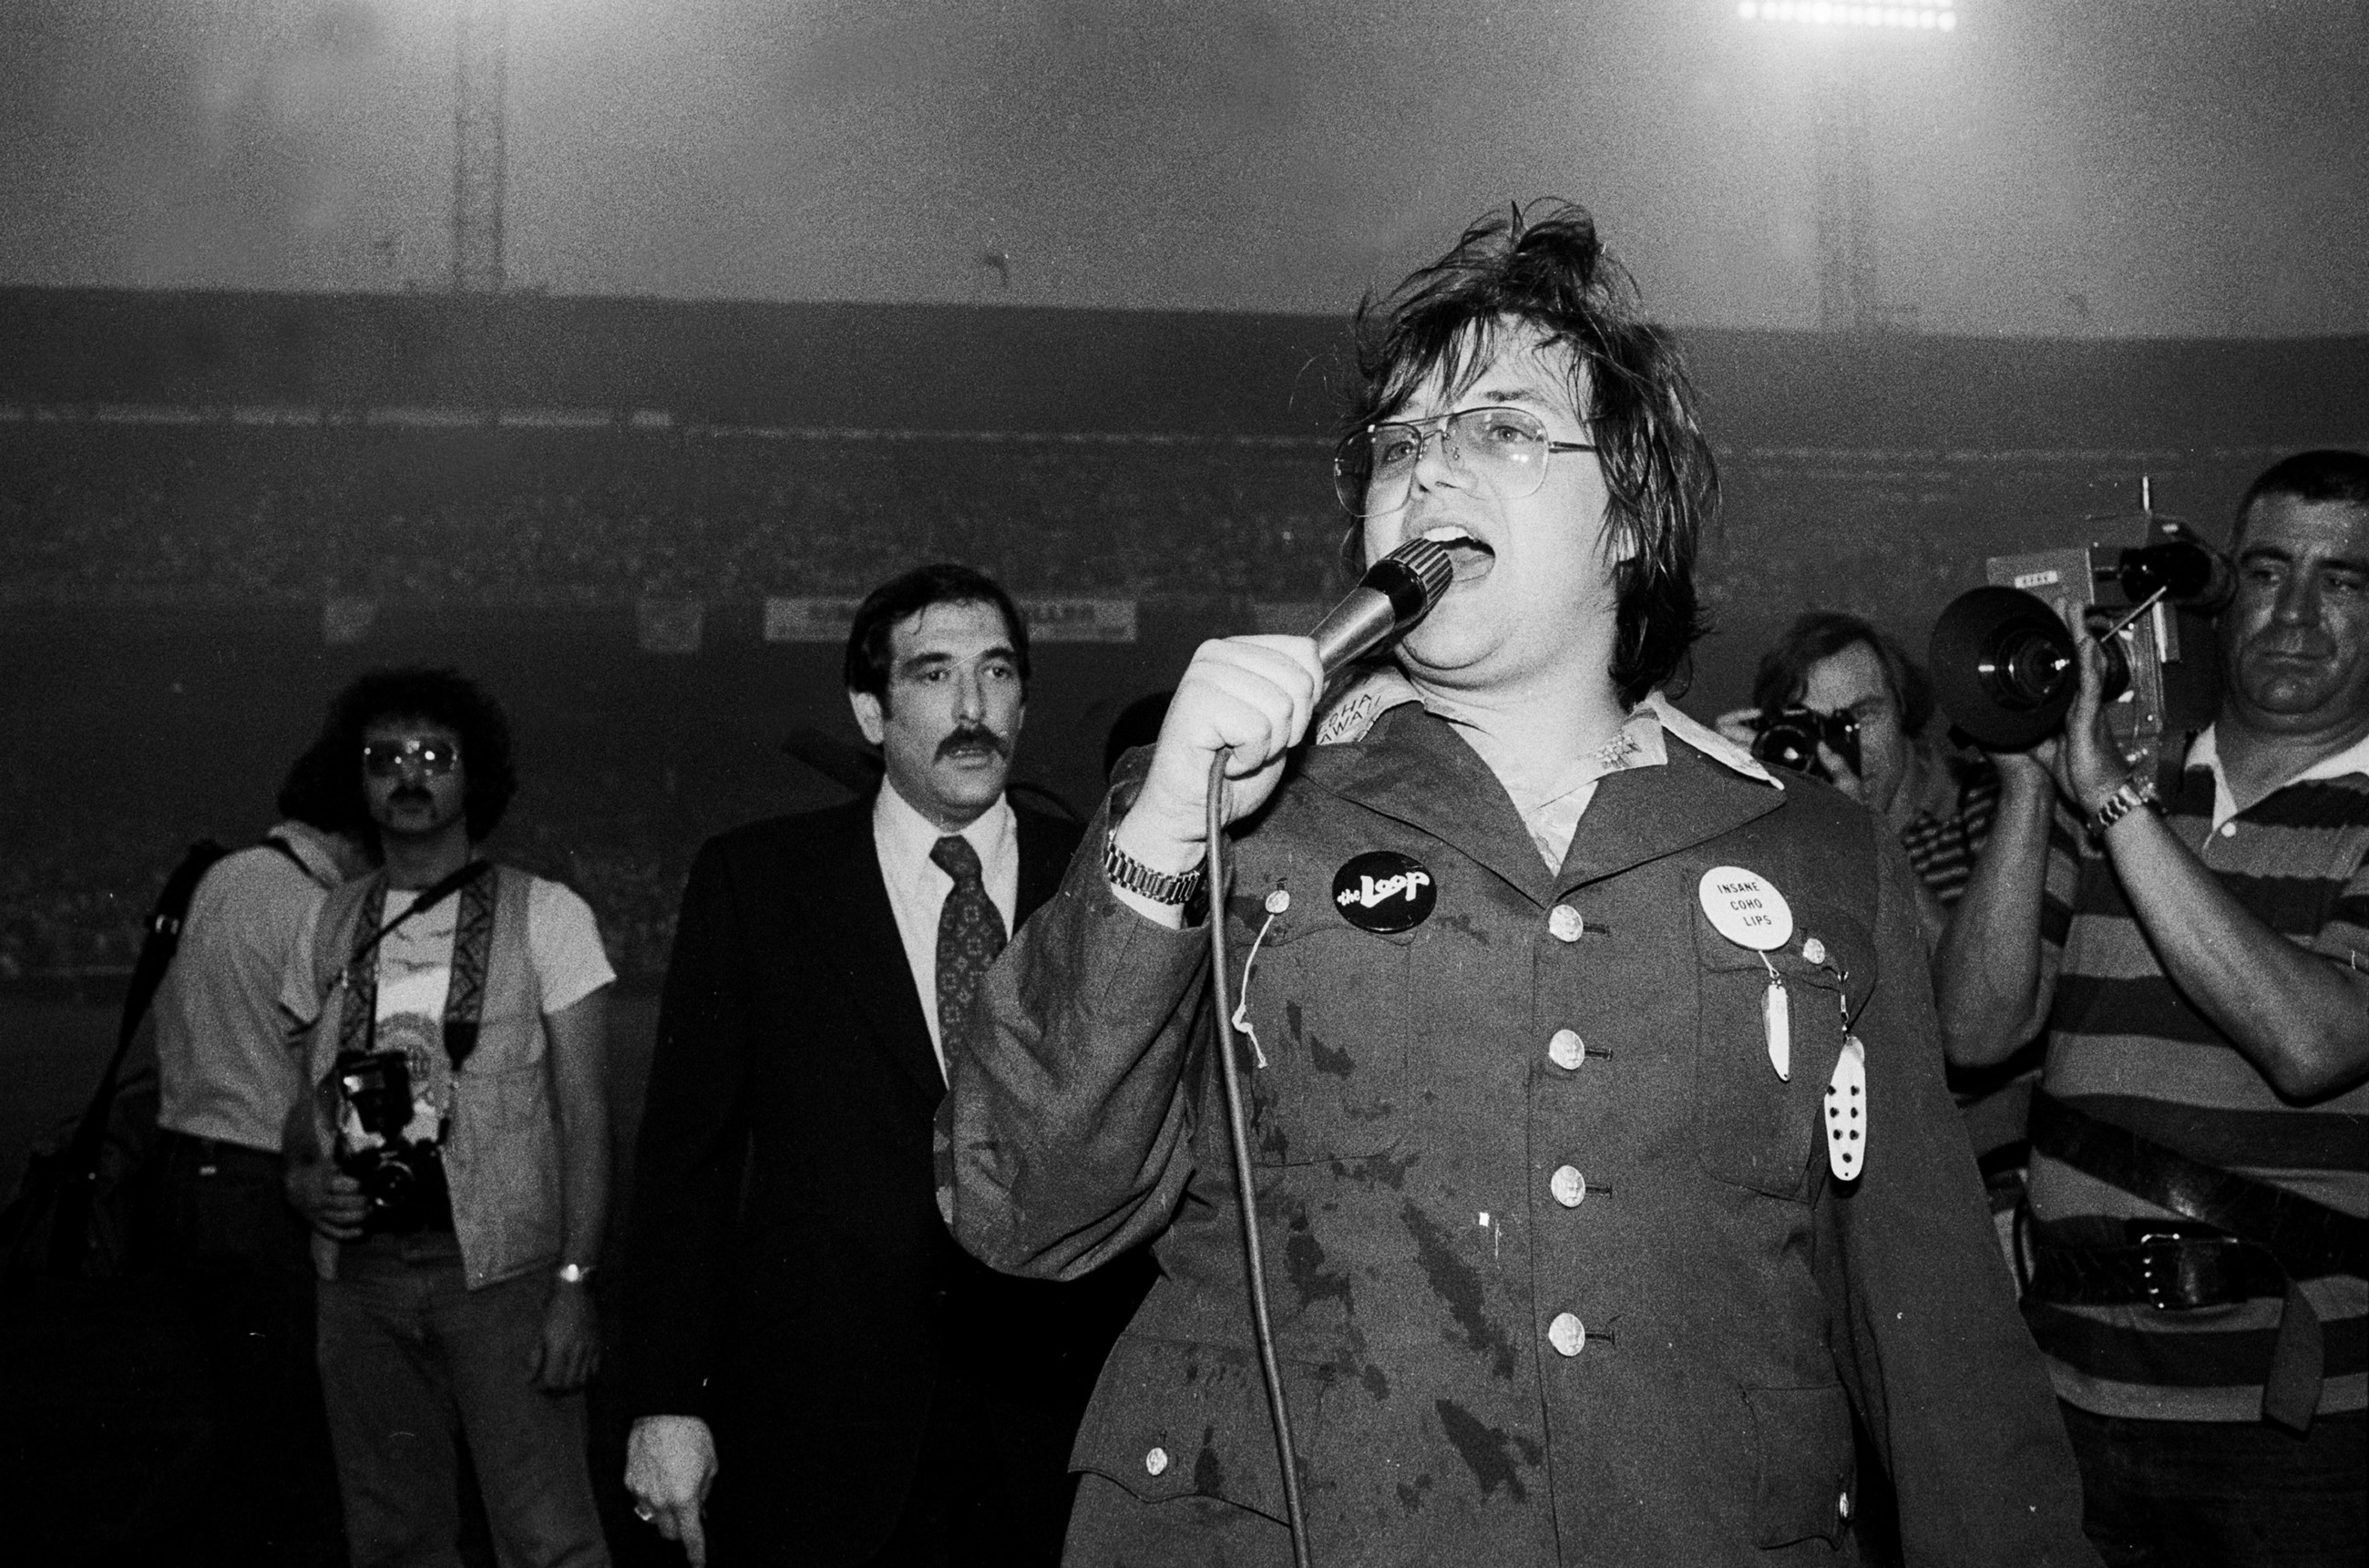 Steve Dahl Leads The Crowd In Anti Disco Chants During His Demolition Event At Comiskey Park Chicago On July 12 1979 Paul Natkin Getty Images